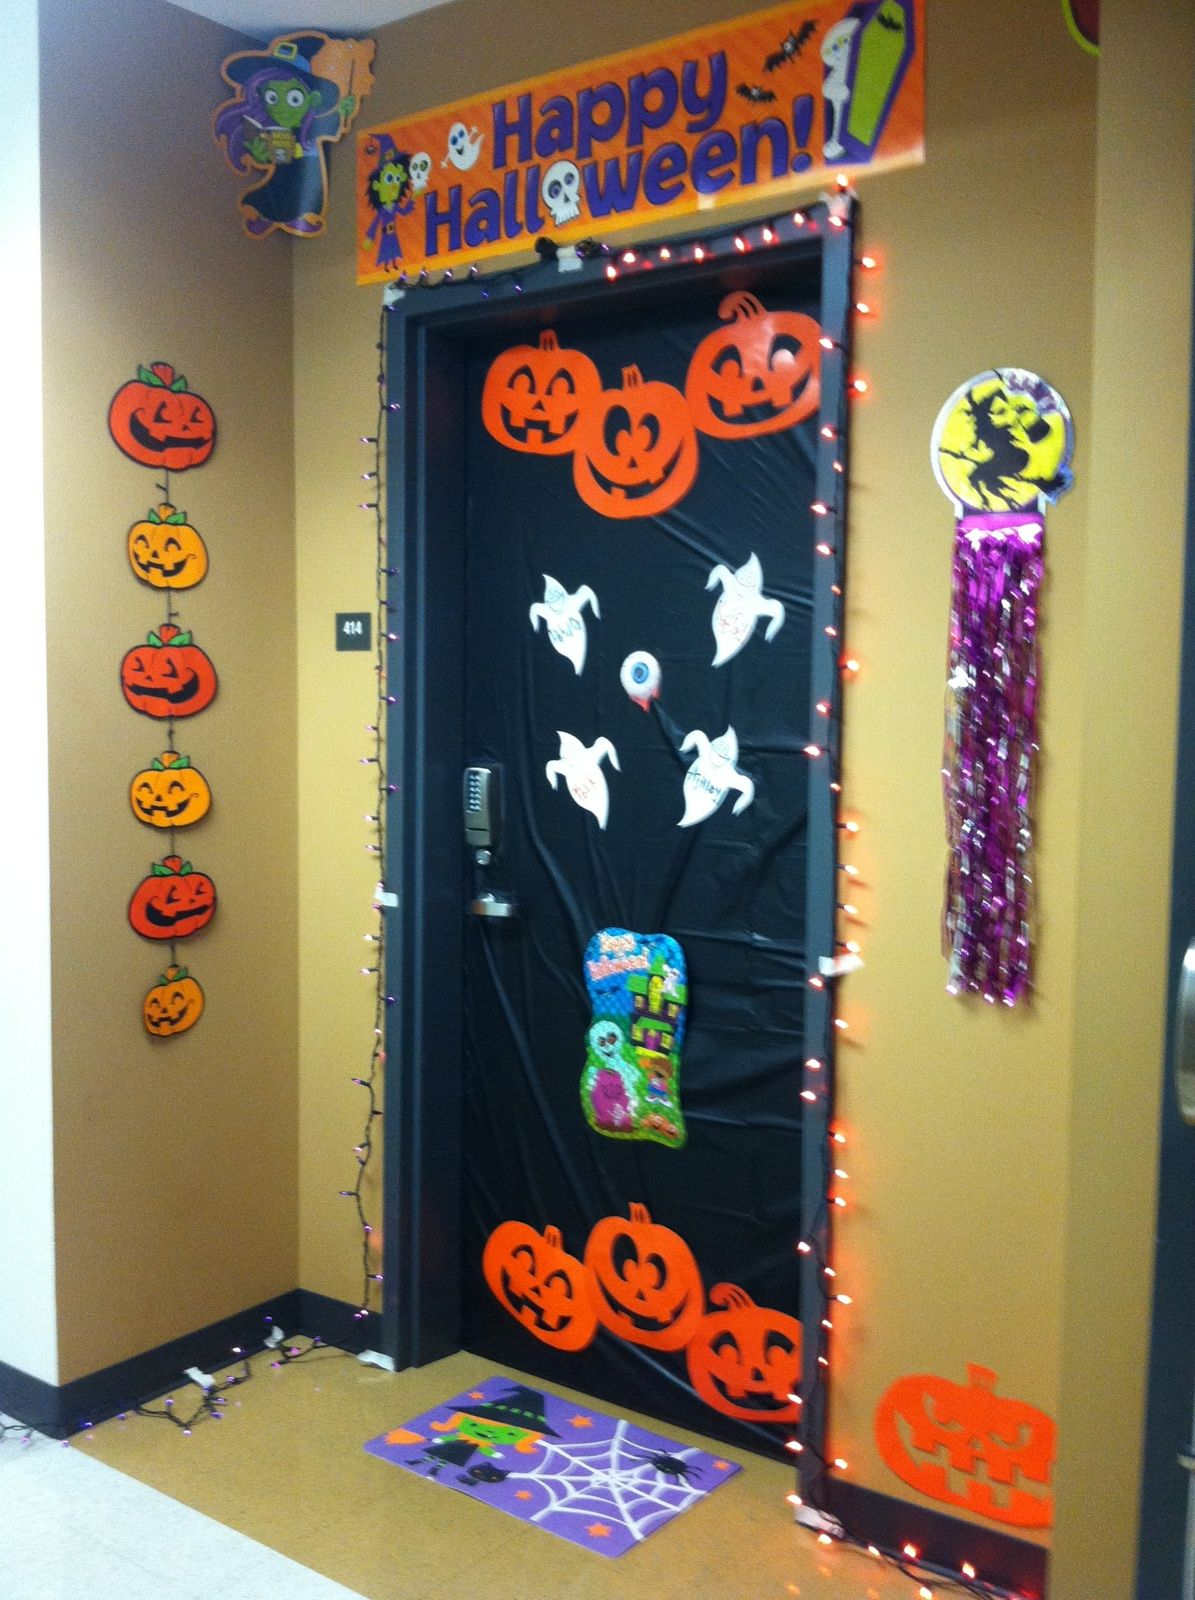 halloween dorm door decorations - Google Search Door Decorating - Halloween Door Decorations Ideas